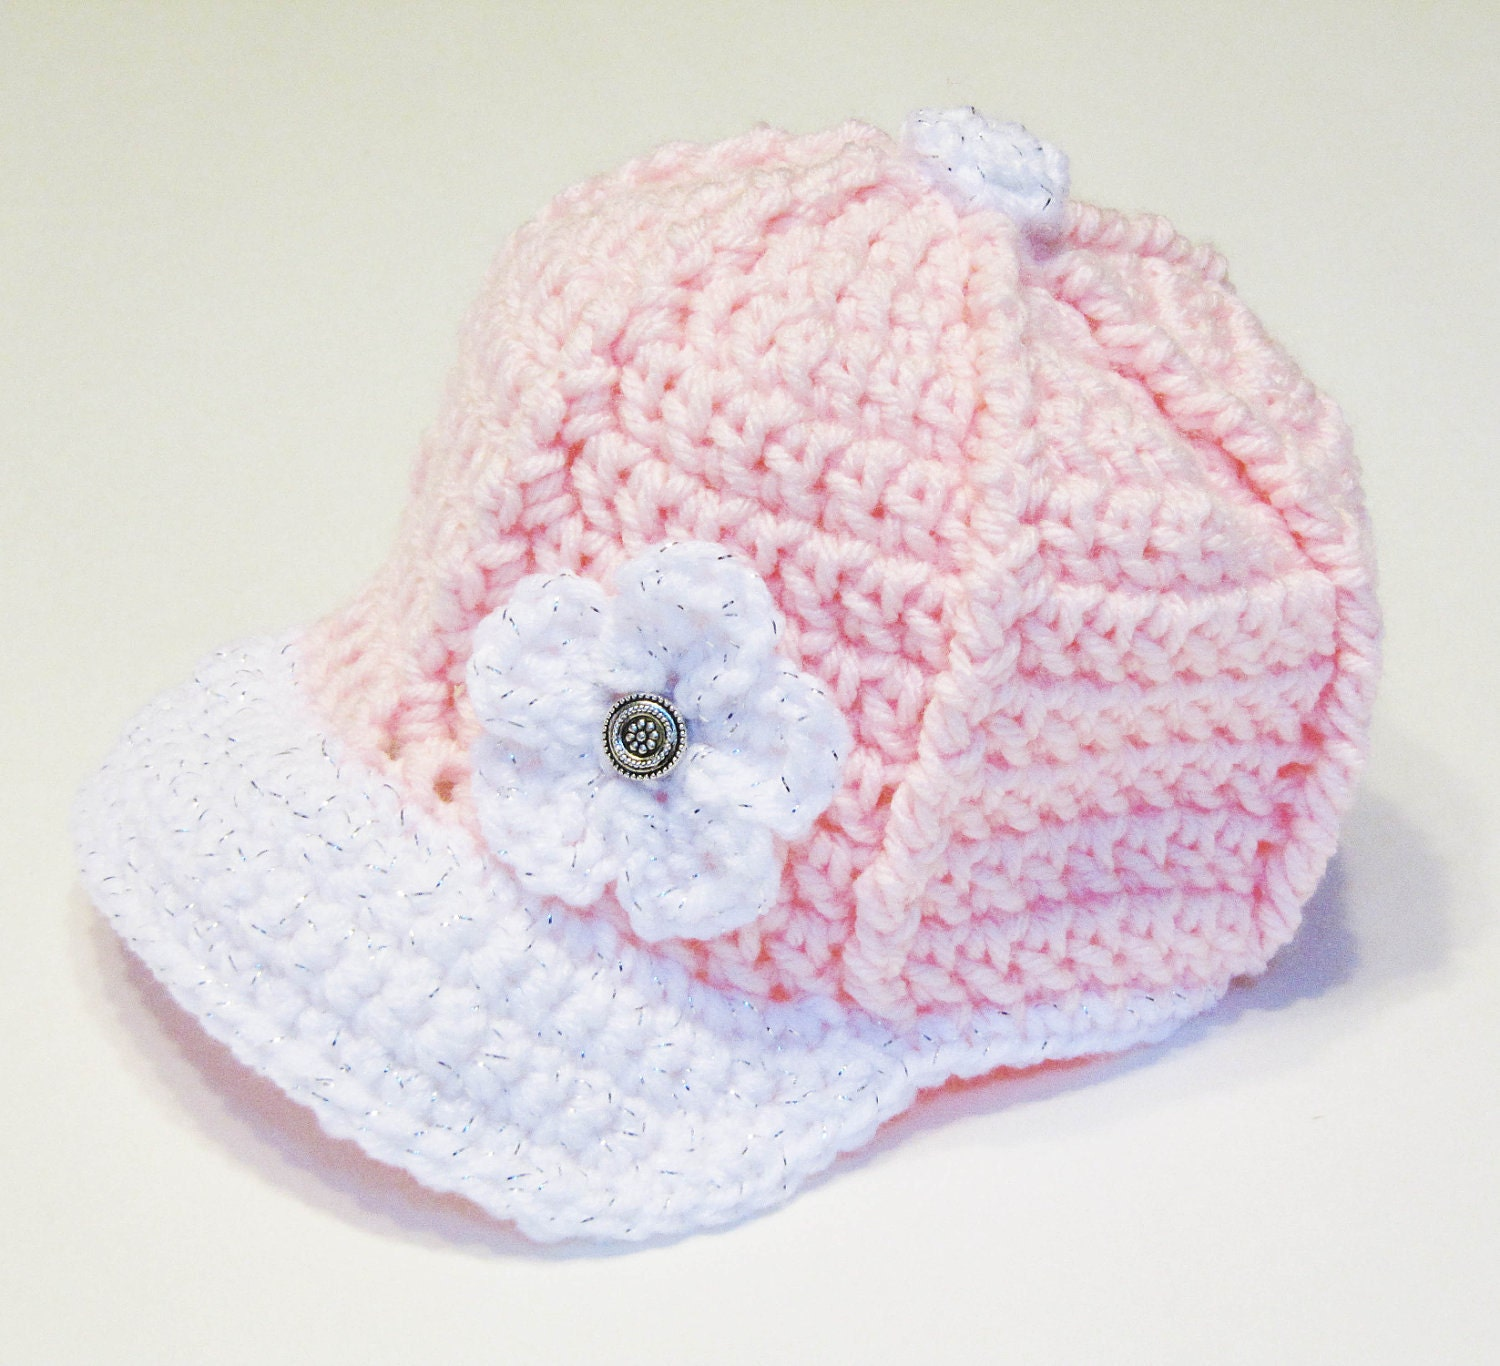 Free Crochet Pattern Newborn Baseball Cap : Crochet Baseball Cap CROCHET PATTERN instant download